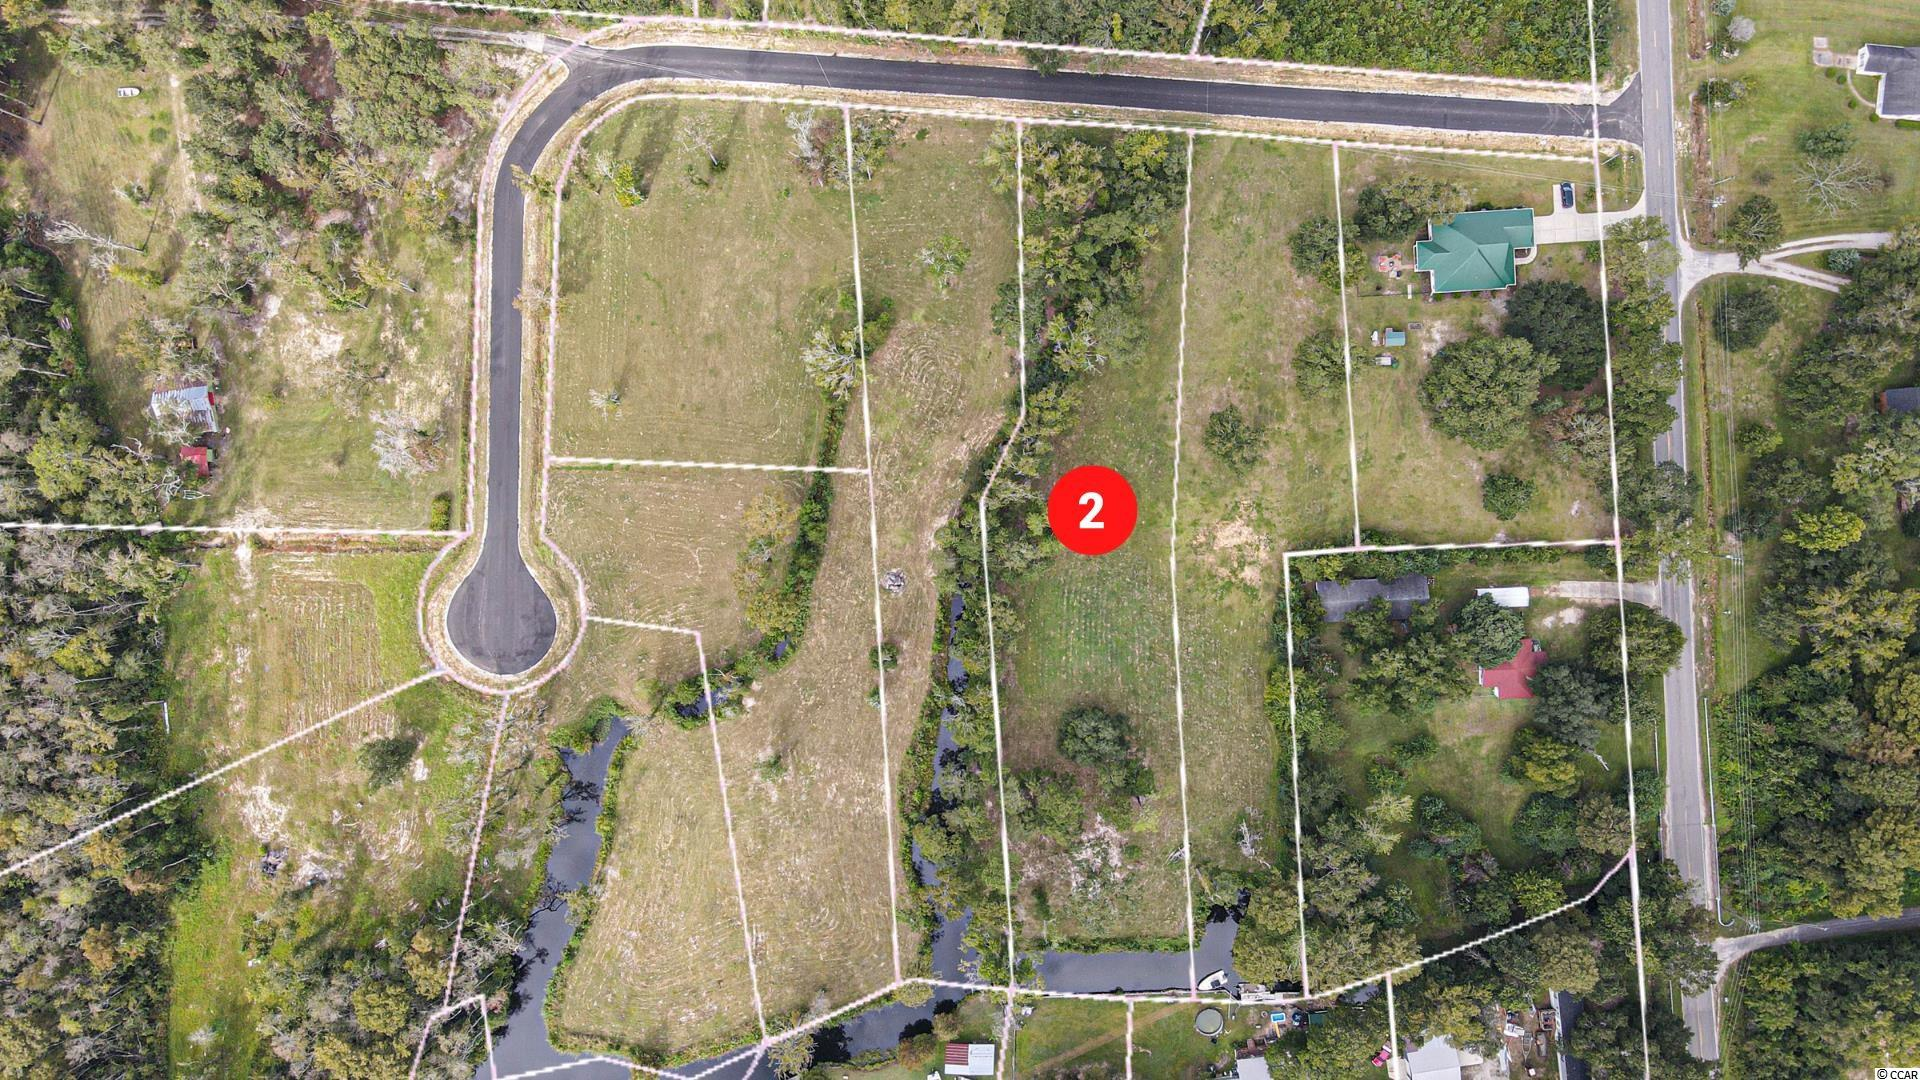 DON'T MISS OUT ON THIS INCREDIBLE OPPORTUNITY! This lot is OVER 1.5 ACRES OF LAND in an INTRACOASTAL WATERWAY COMMUNITY! This lot gives you the opportunity to build your dream home! Being in such a great location, you are only minutes to the beach, Market Commons, Coastal Grand Mall, Broadway at the beach, delicious restaurants, shops, and so much more! Being in this Intracoastal Waterway community of Peachtree Estates, you can enjoy all the water activities just walking distance from your home perfect for all the summertime fun! Book your showing today!